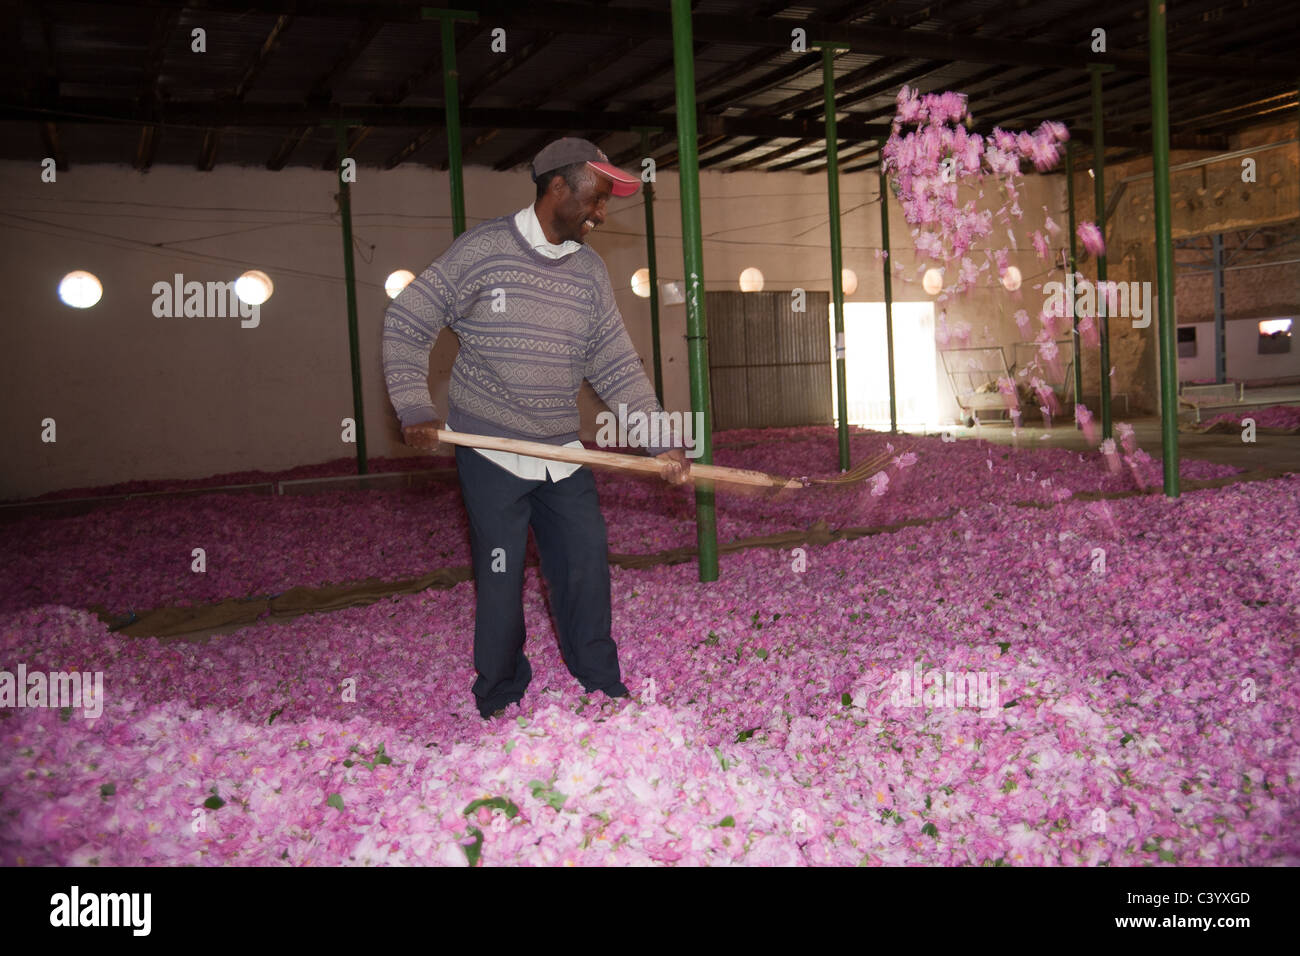 Man Sorting Buds In Rose Valley During The Rose Festival In Kelaa